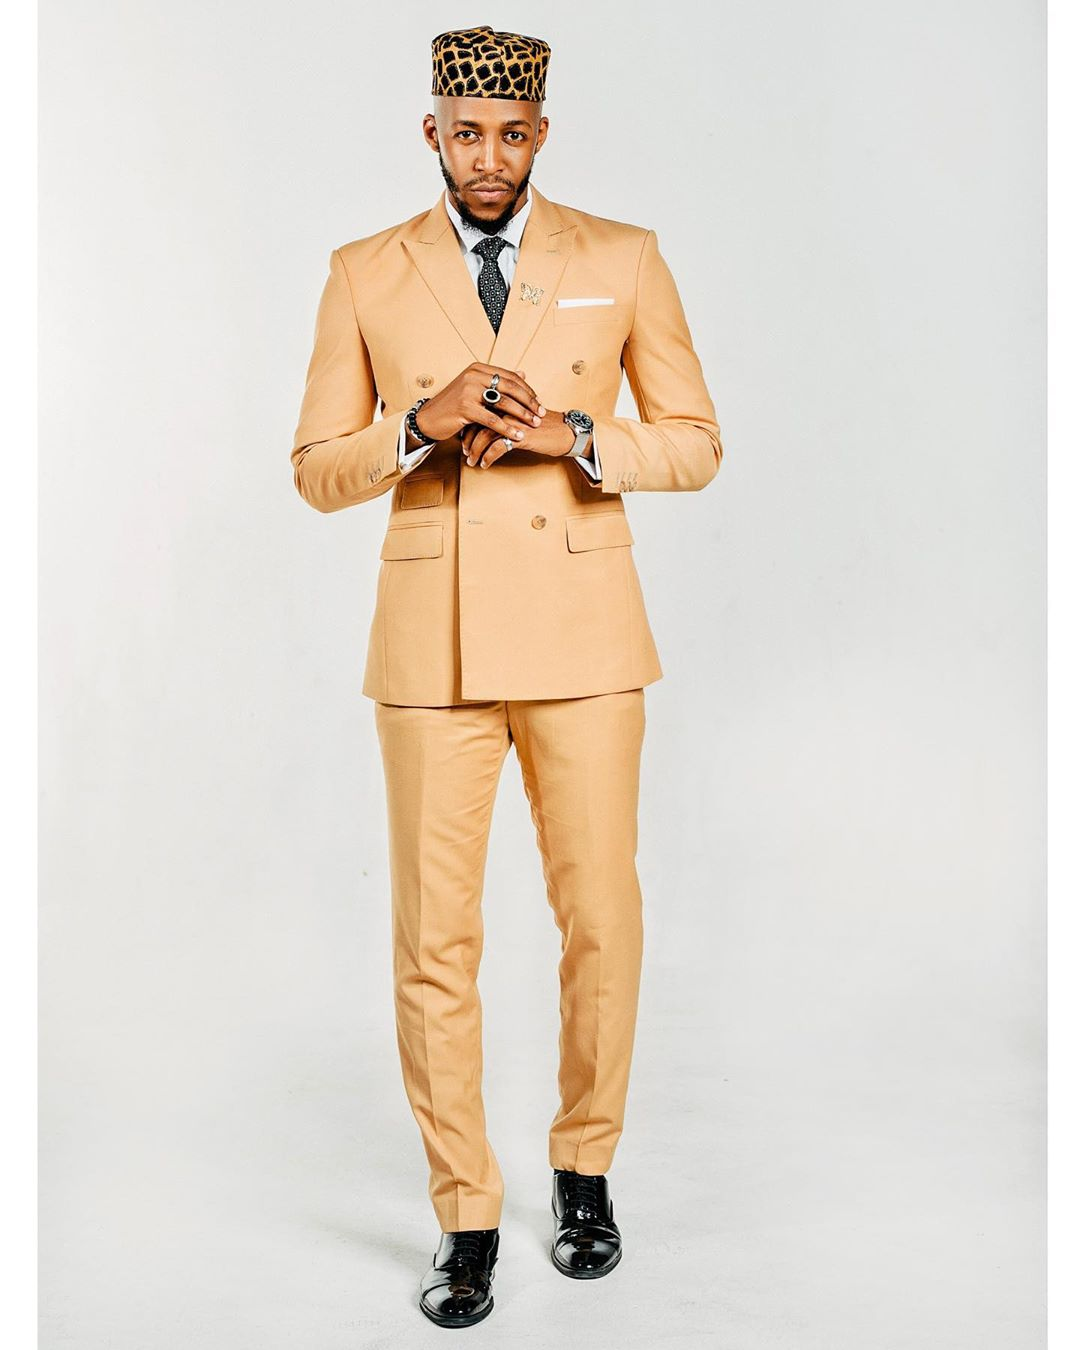 male-celebrities-africa-african-dapper-suave-style-rave